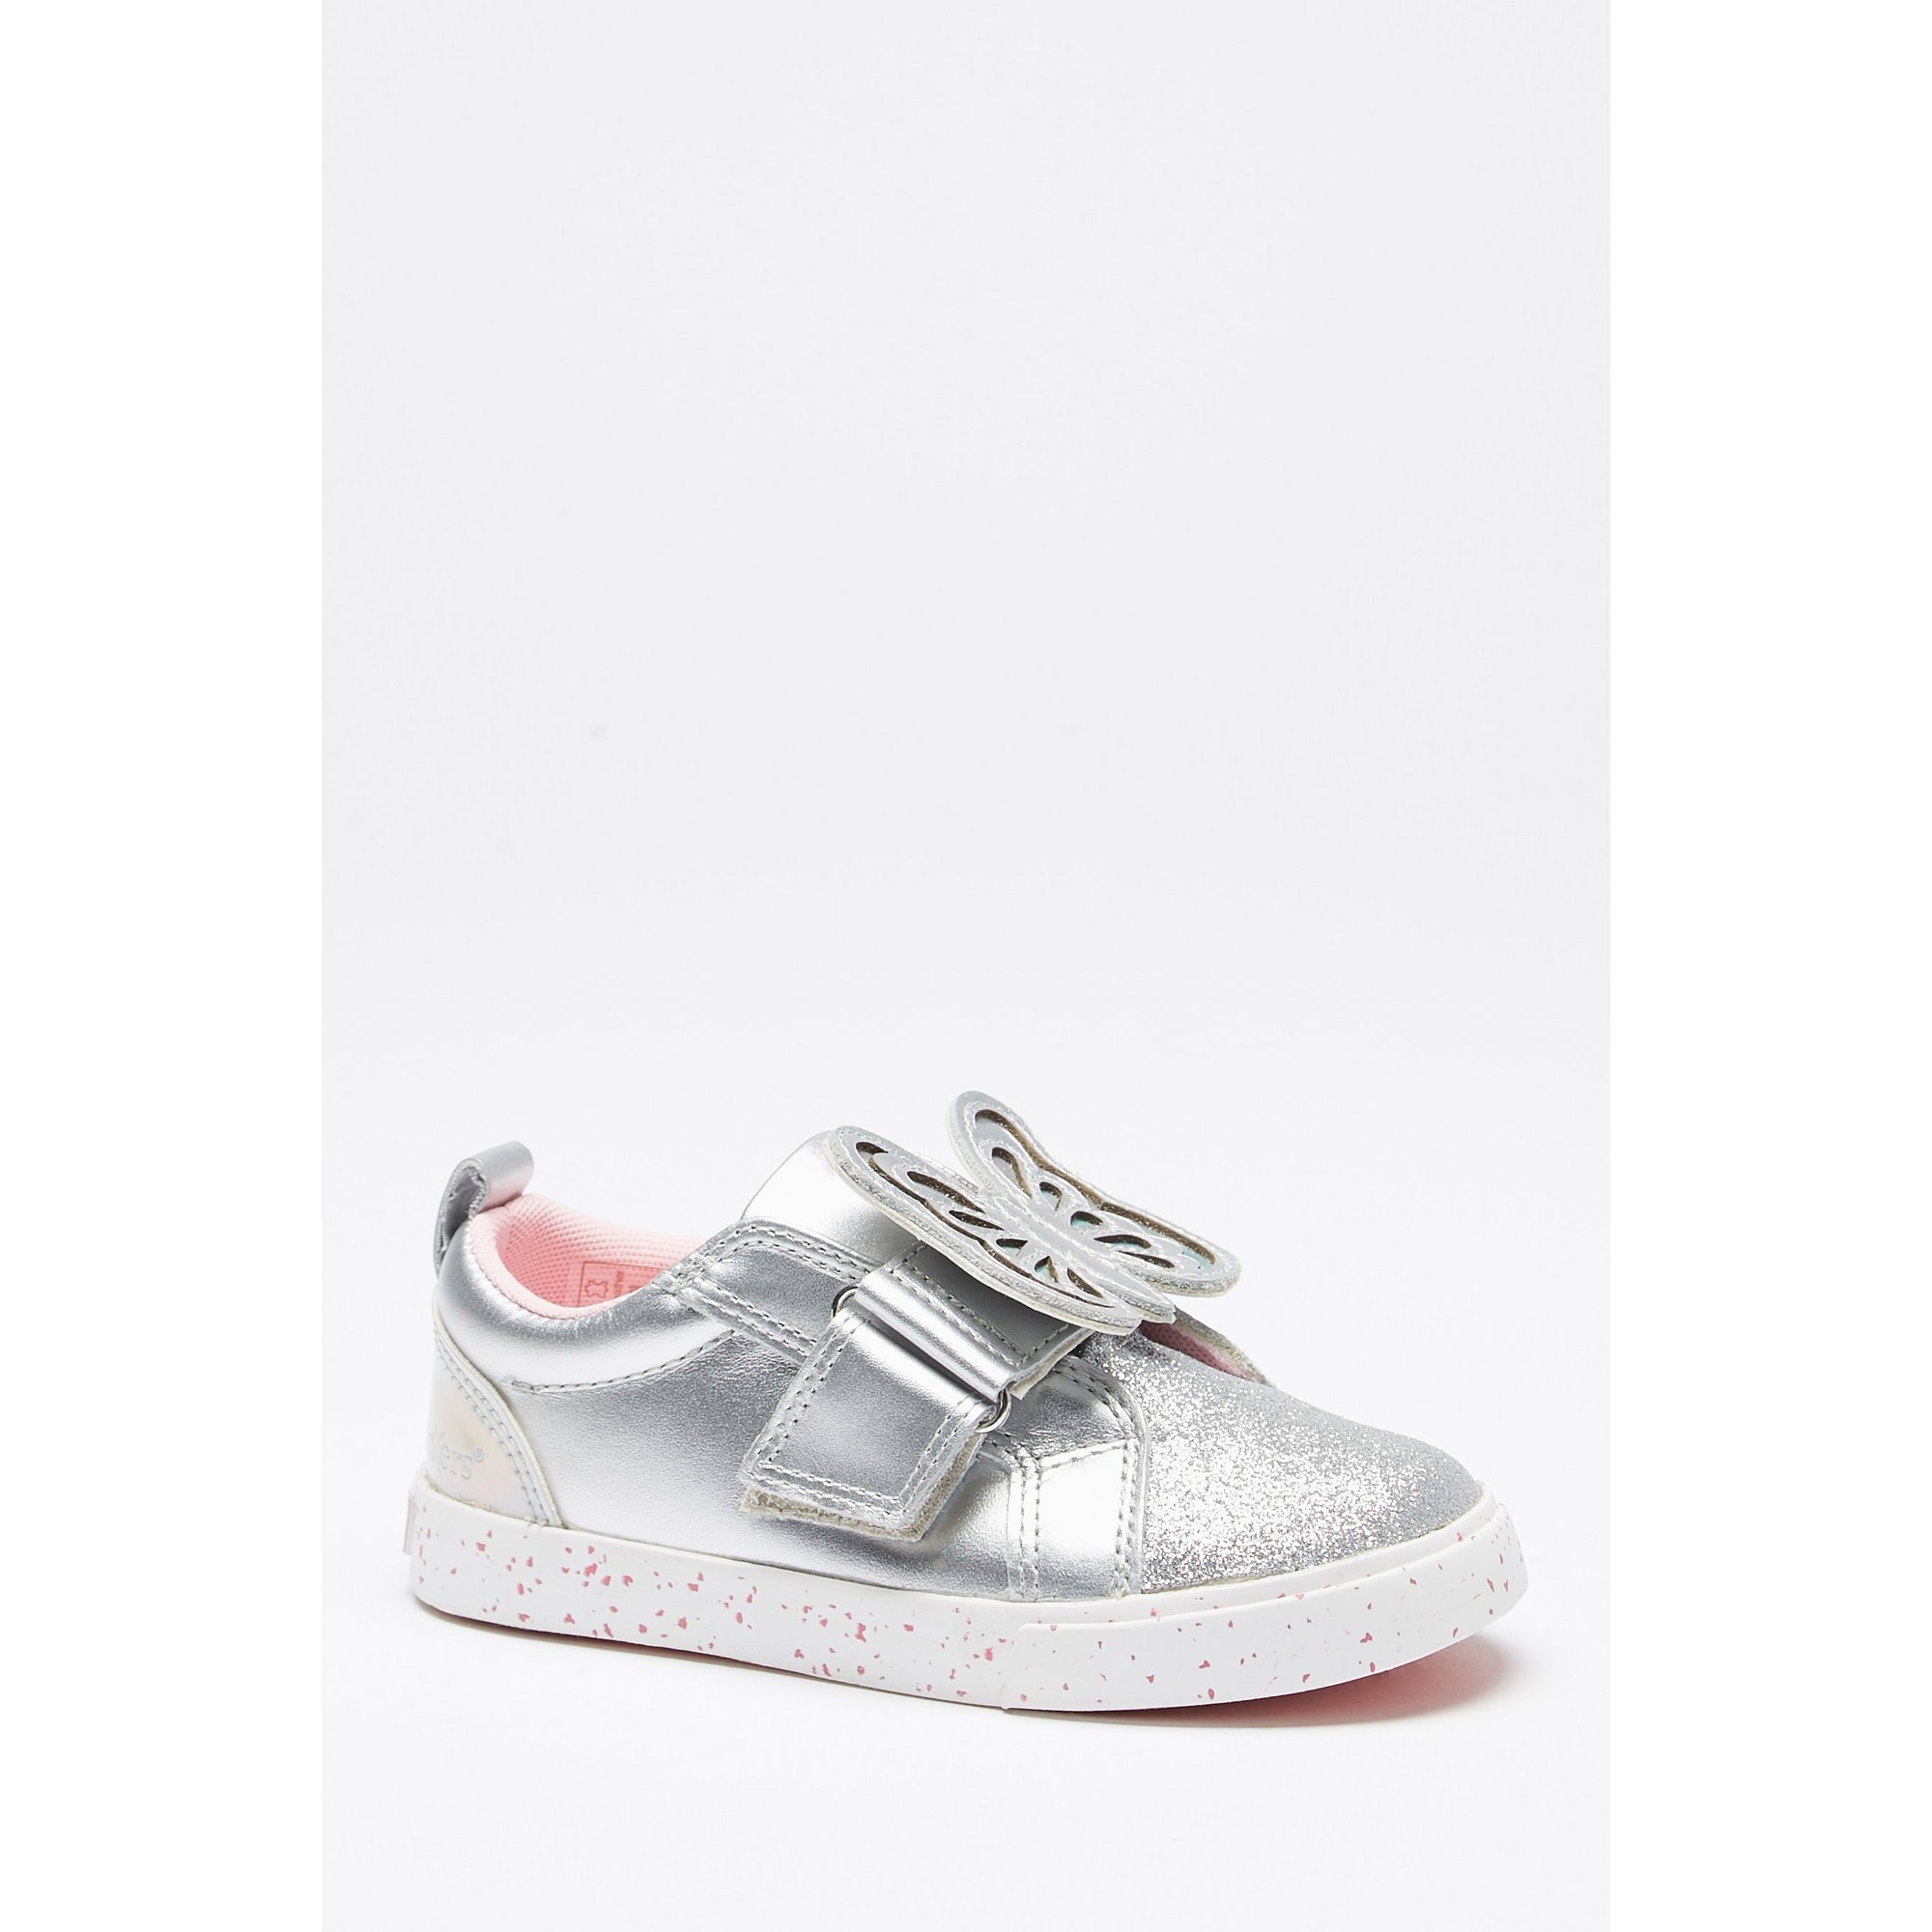 Image of Kickers Tovni Fearie Trainers